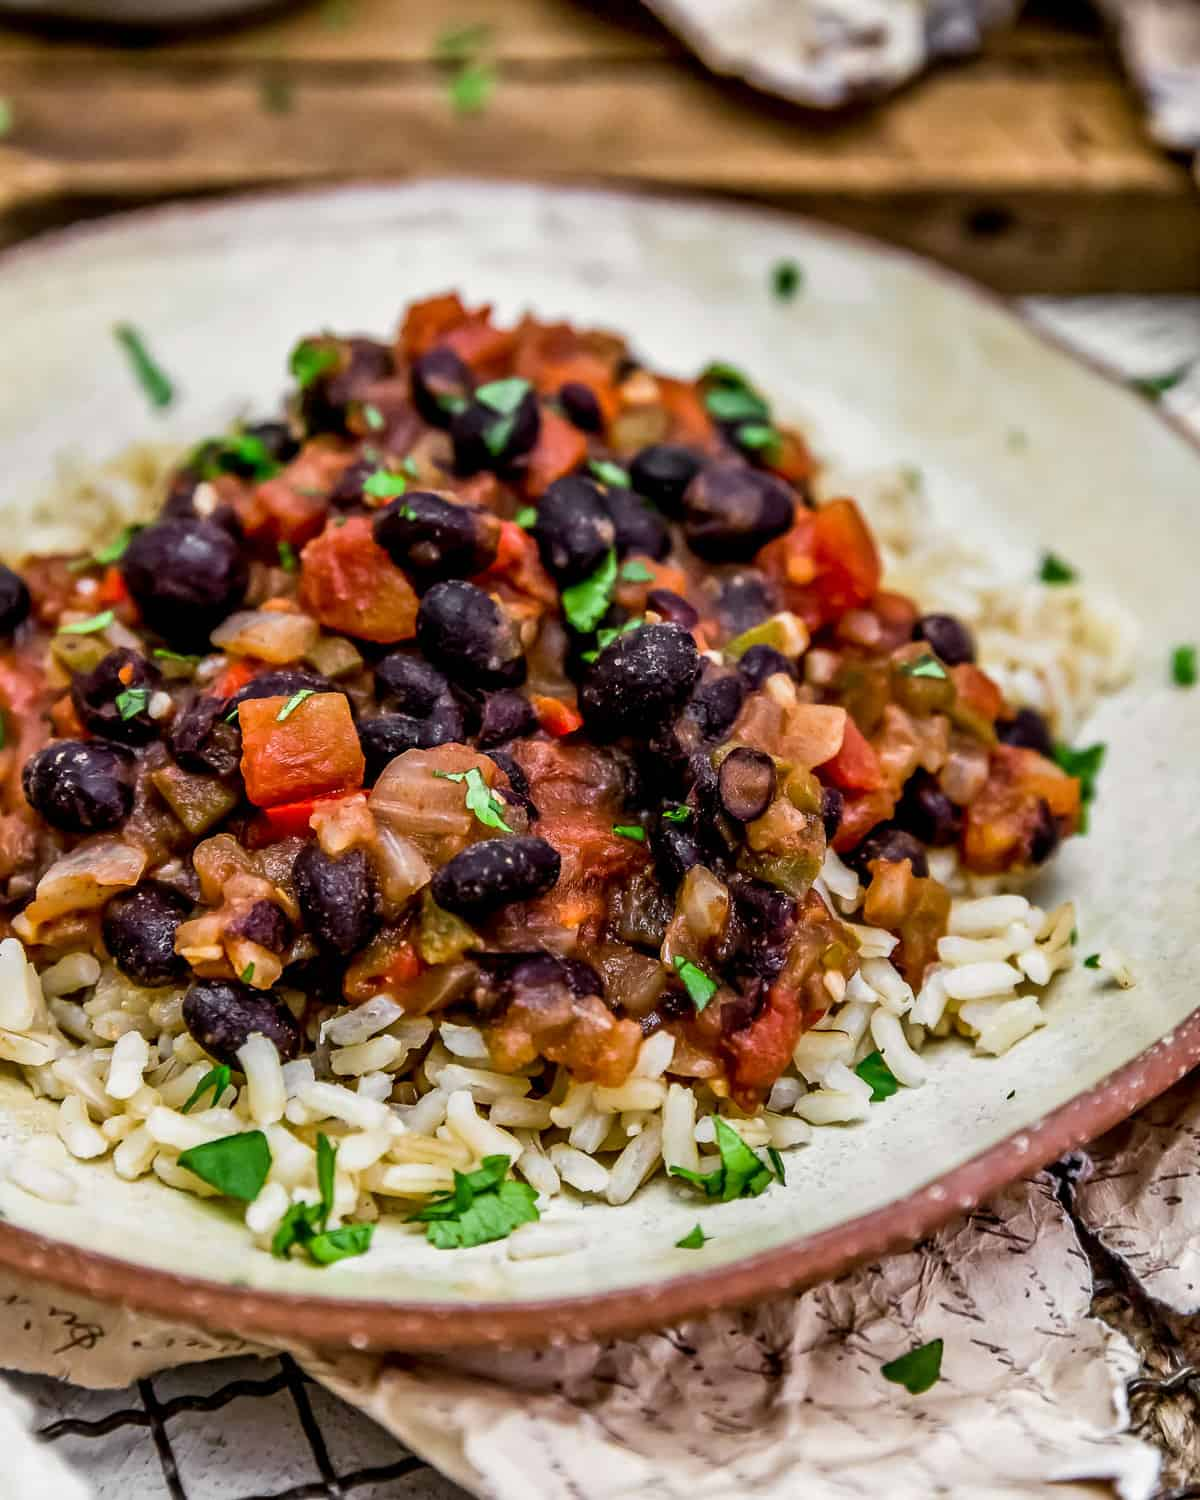 Plate of Cuban Black Beans with rice